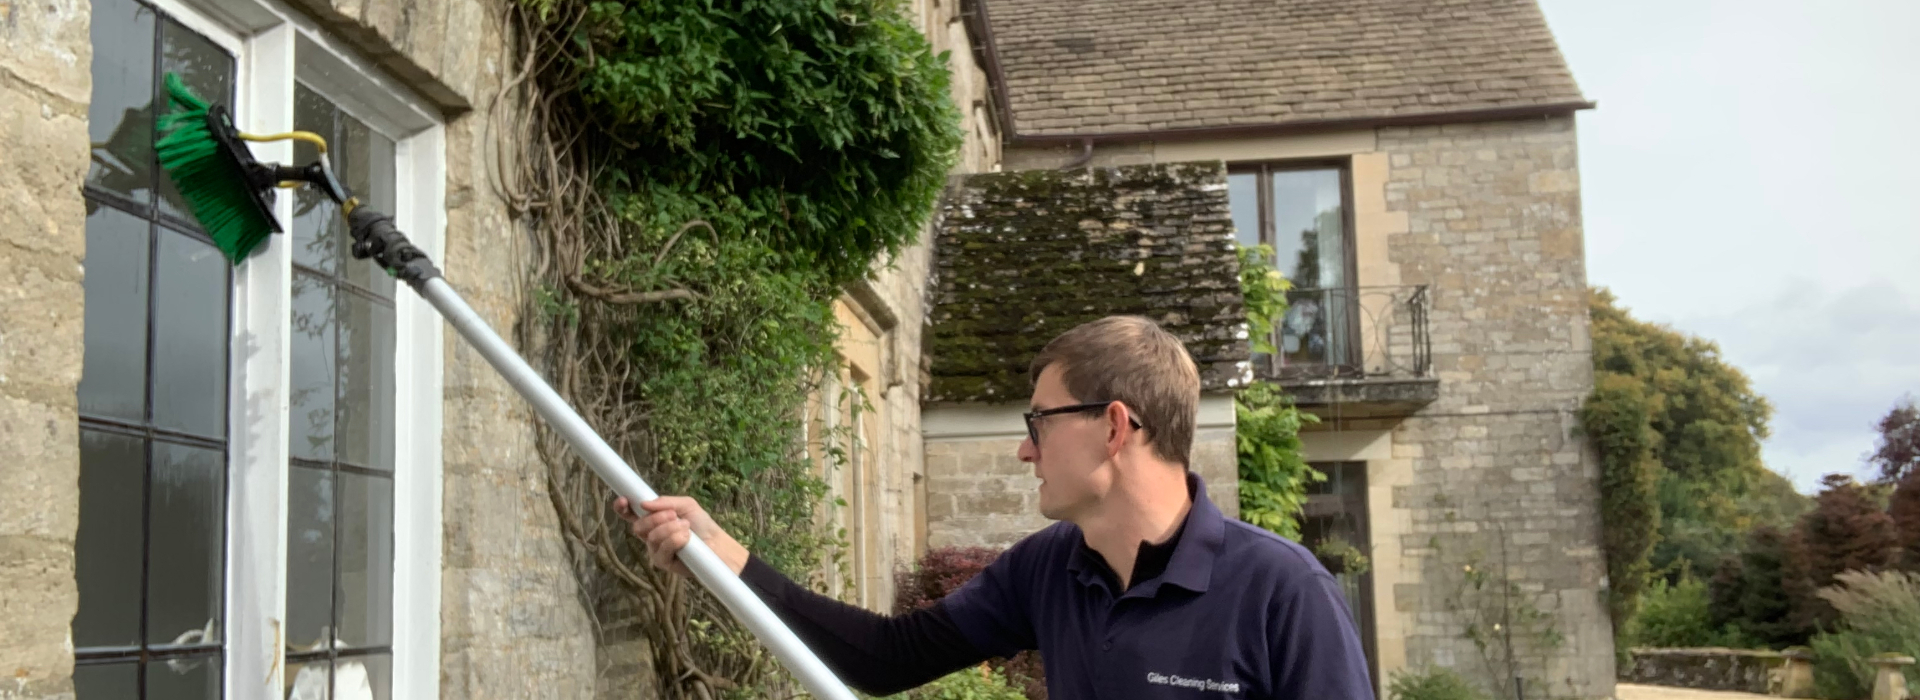 window cleaning company tetbury